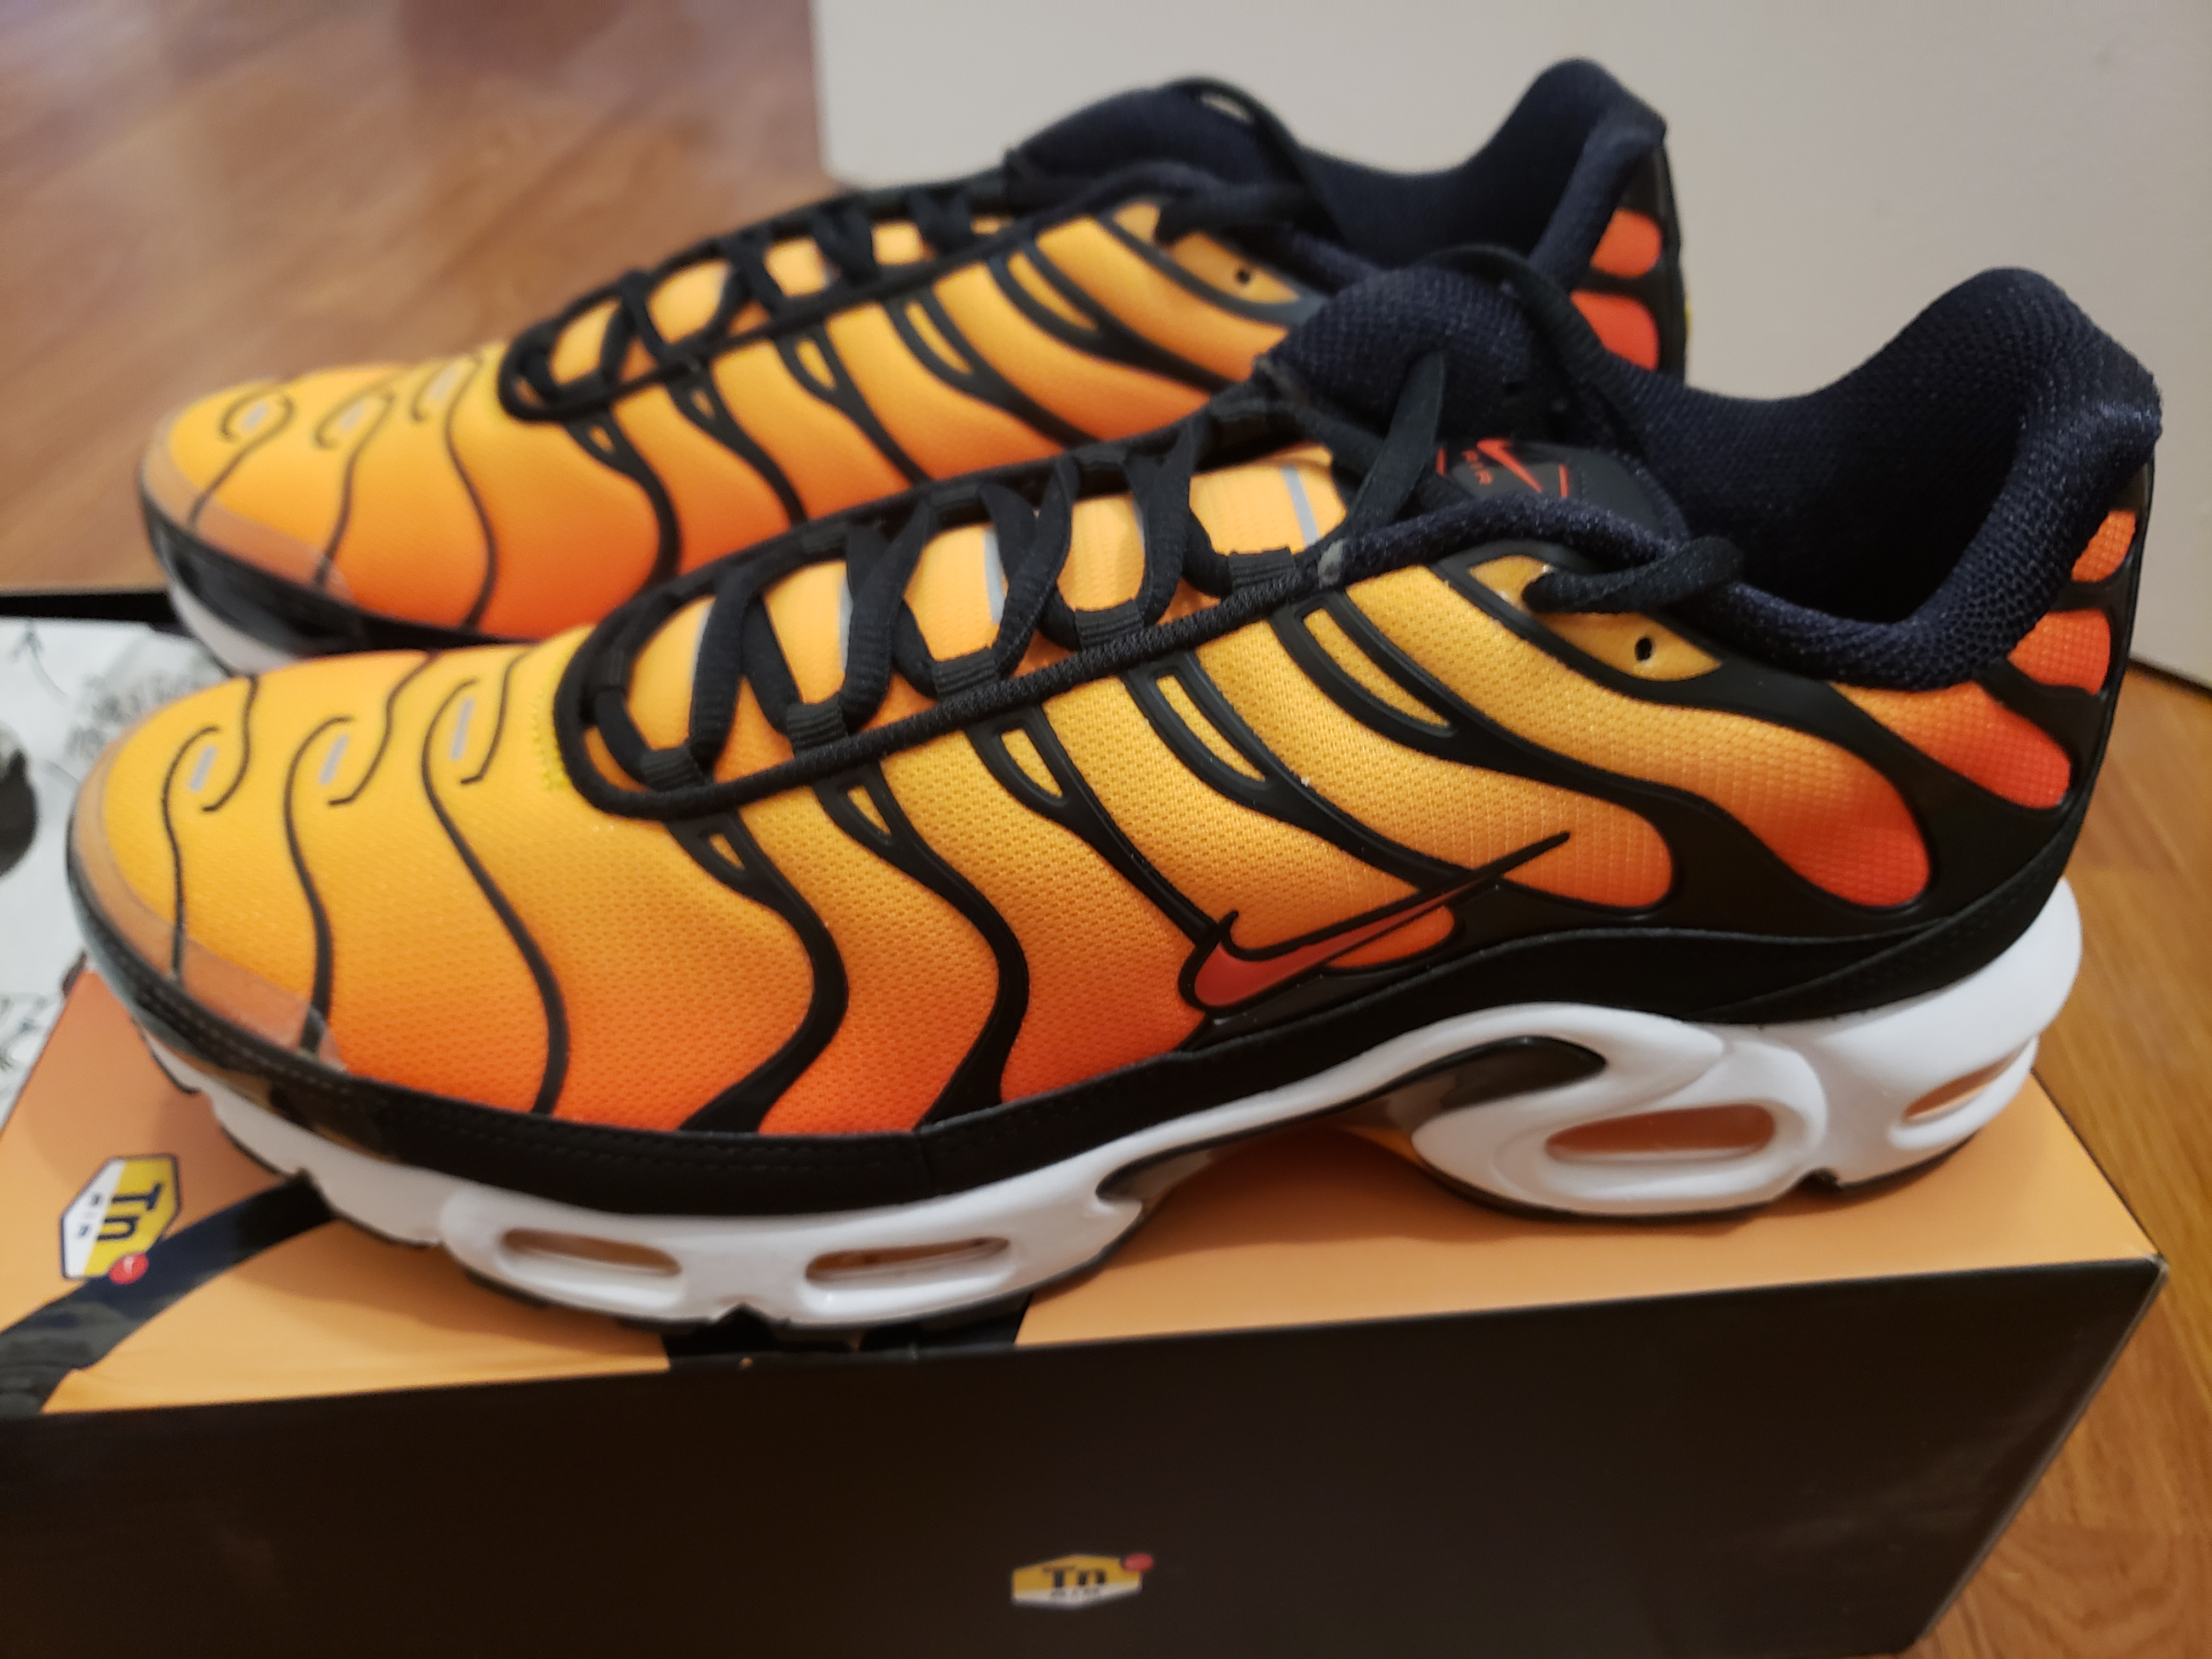 897c006f3a Nike ×. Air Max Plus TN OG Pimento Sunset. Size: US 11 ...